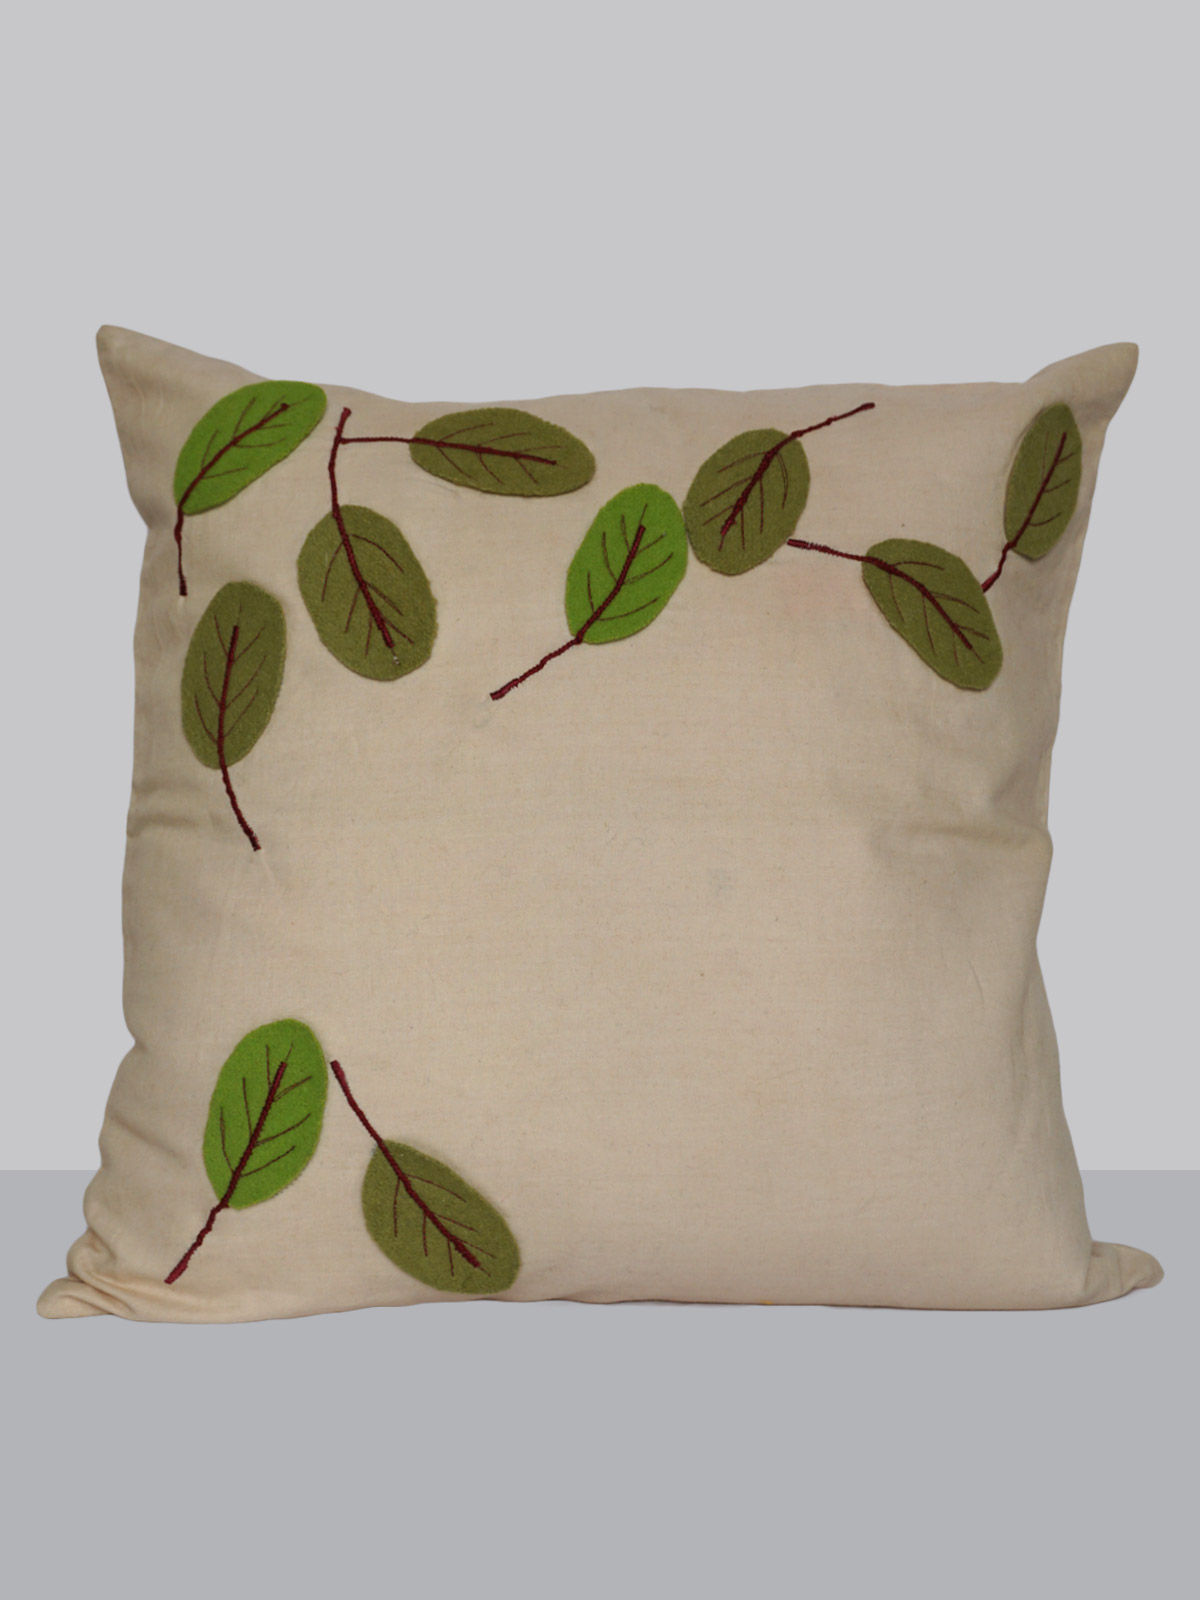 Off-white felt patchwork emroidered spring leaf pattern cotton cushion cover